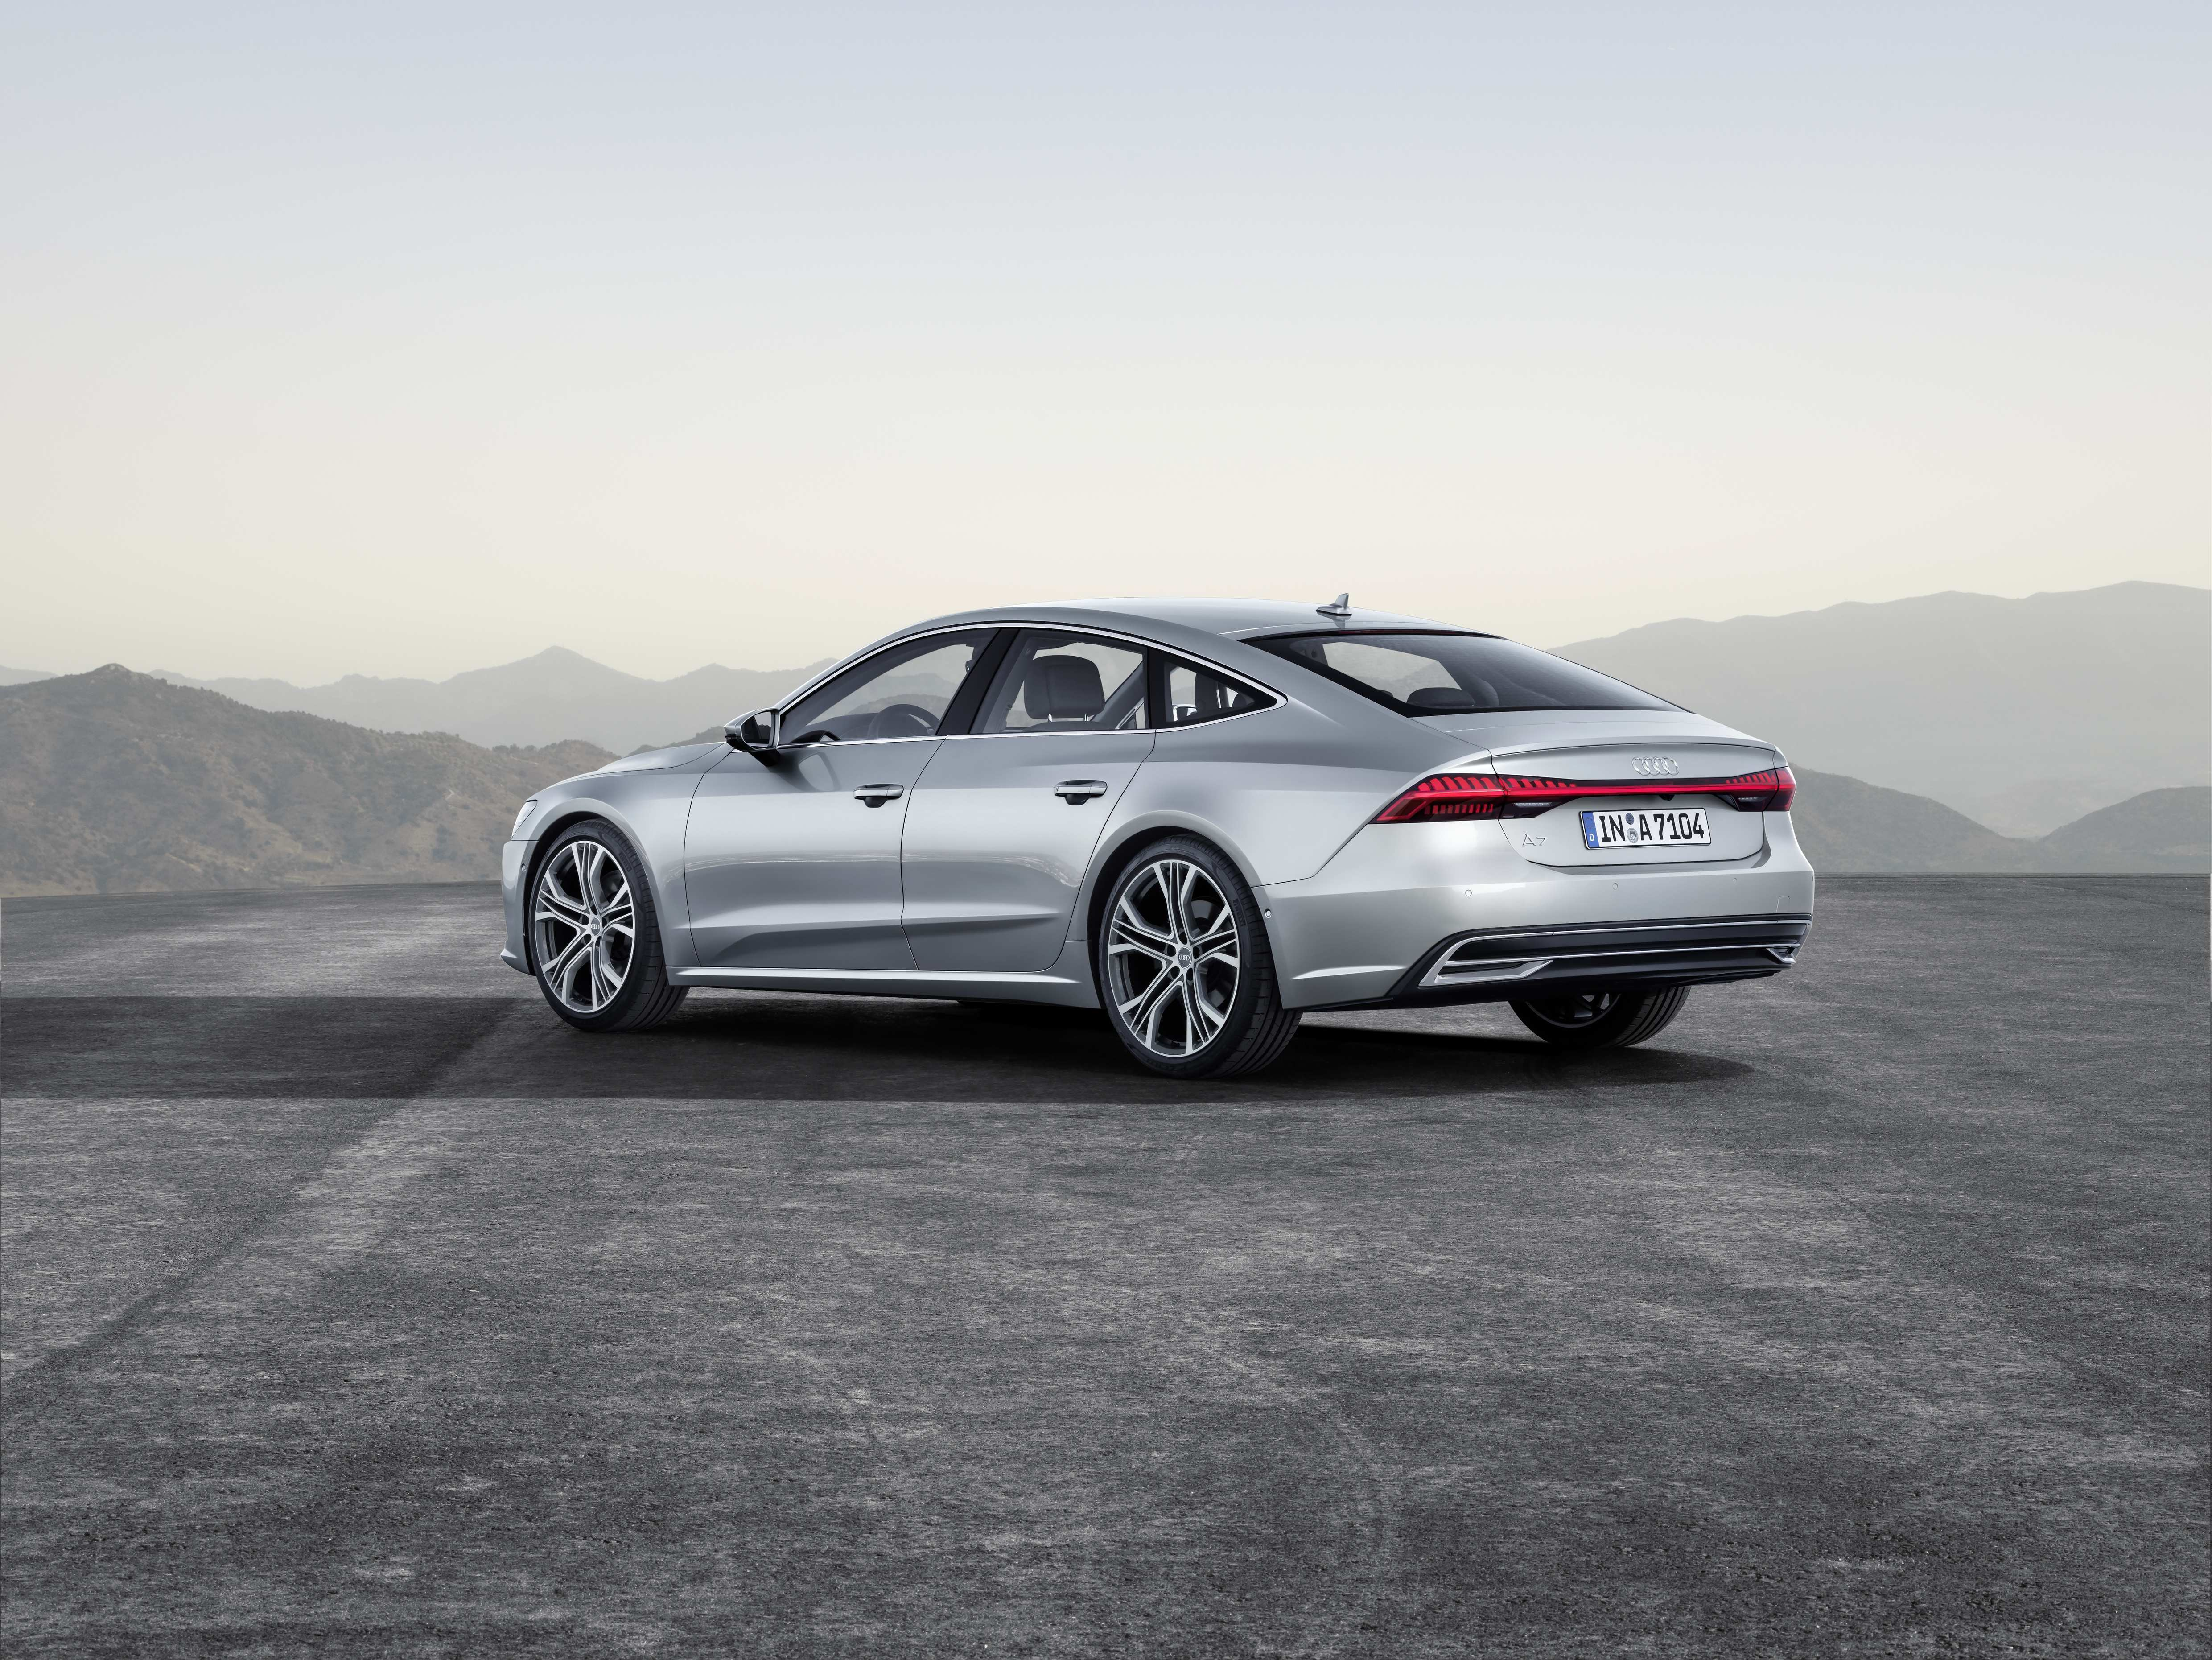 91 New 2019 Audi A7 Debut Ratings with 2019 Audi A7 Debut